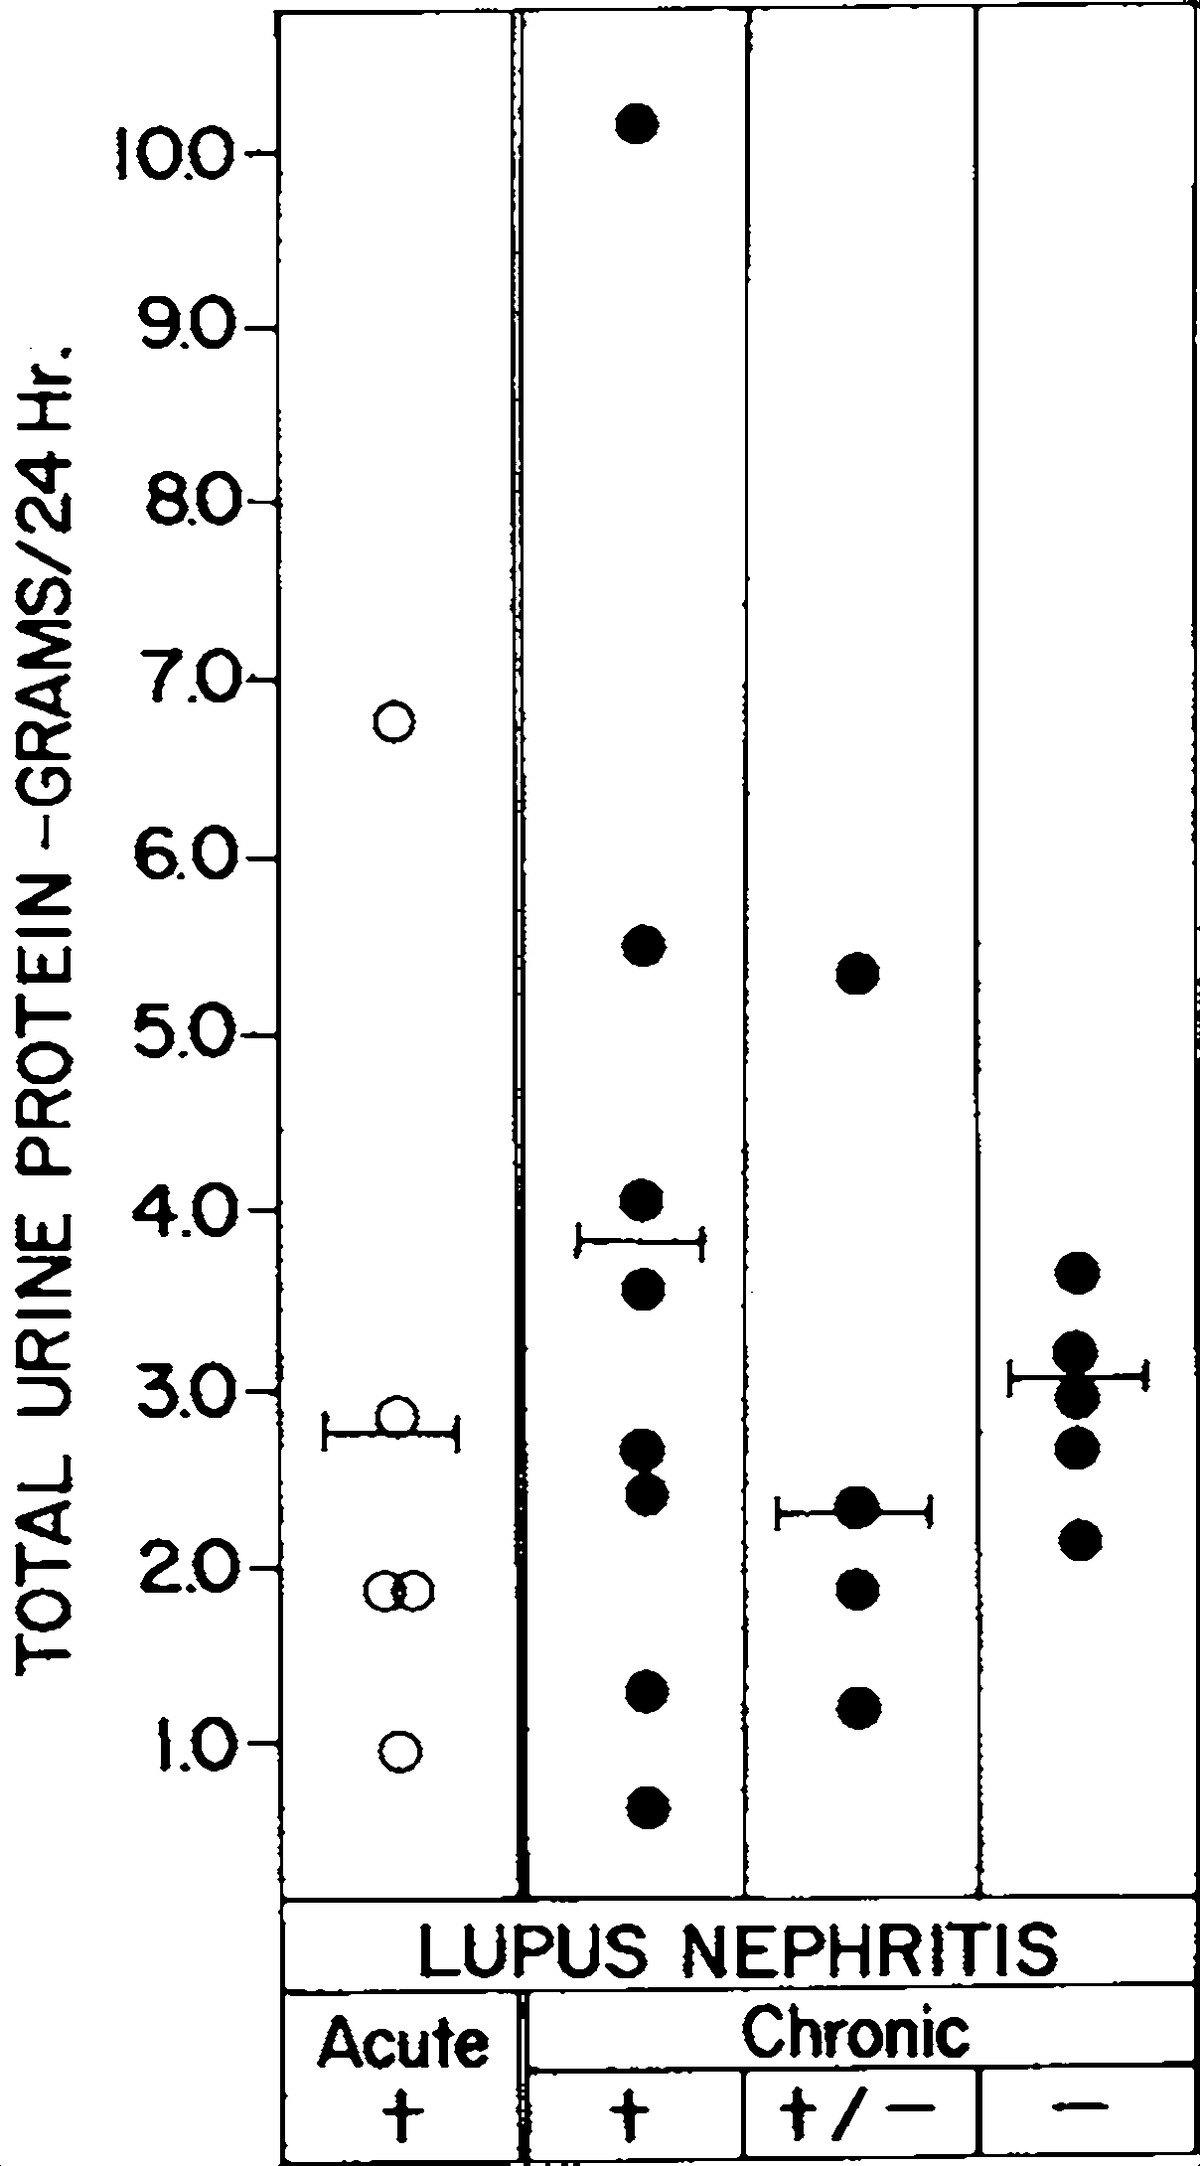 Significance of urinary gamma globulin in lupus nephritis figure 2 relation of total urinary protein to the stage and activity of lupus nephritis symbols as in figure 1 biocorpaavc